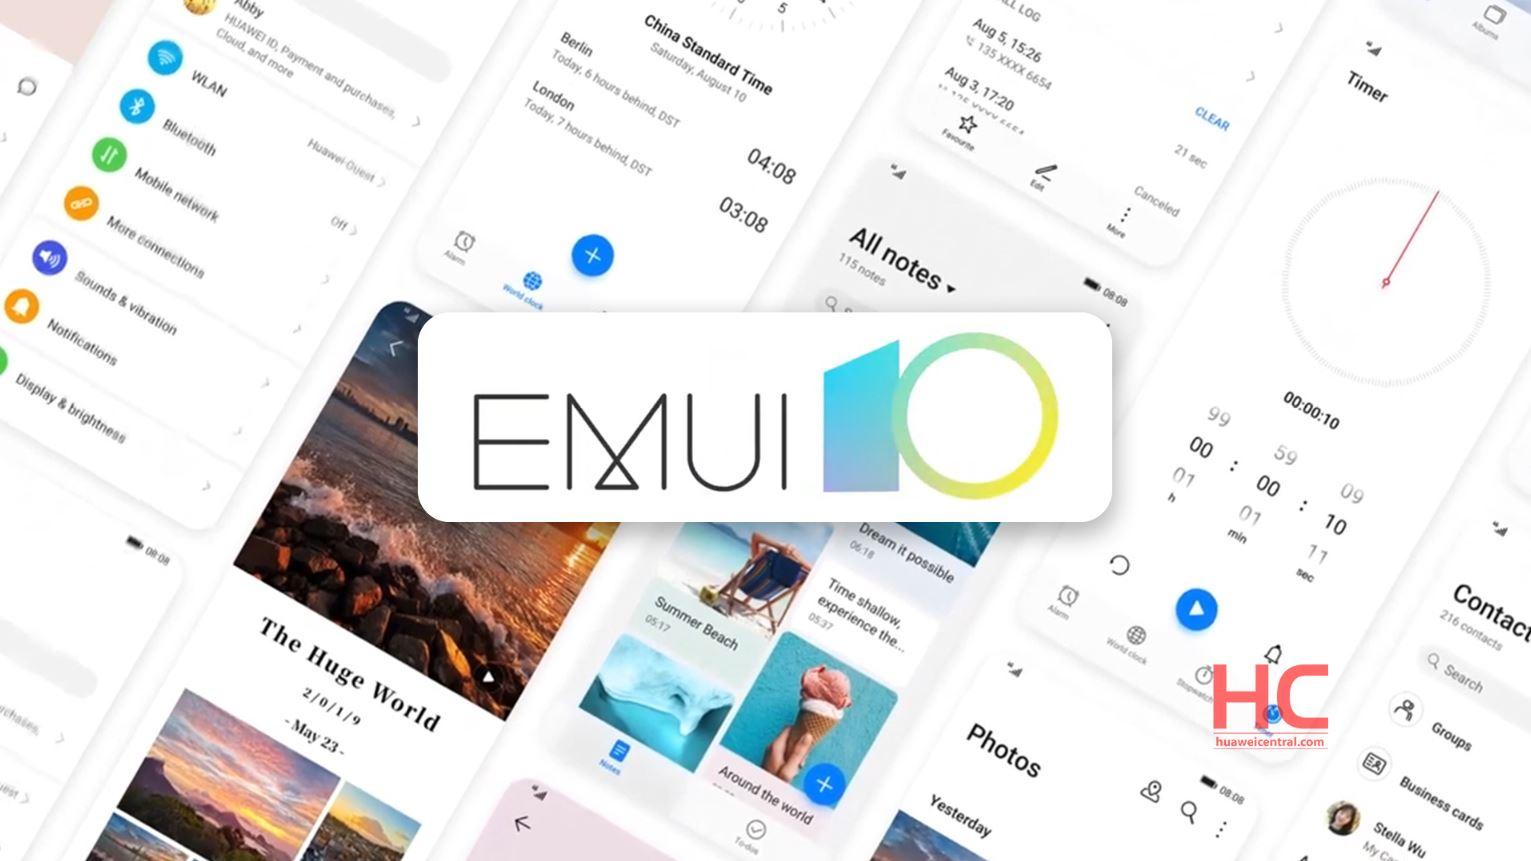 How To Download And Install Emui 10 0 Step By Step Huawei Central